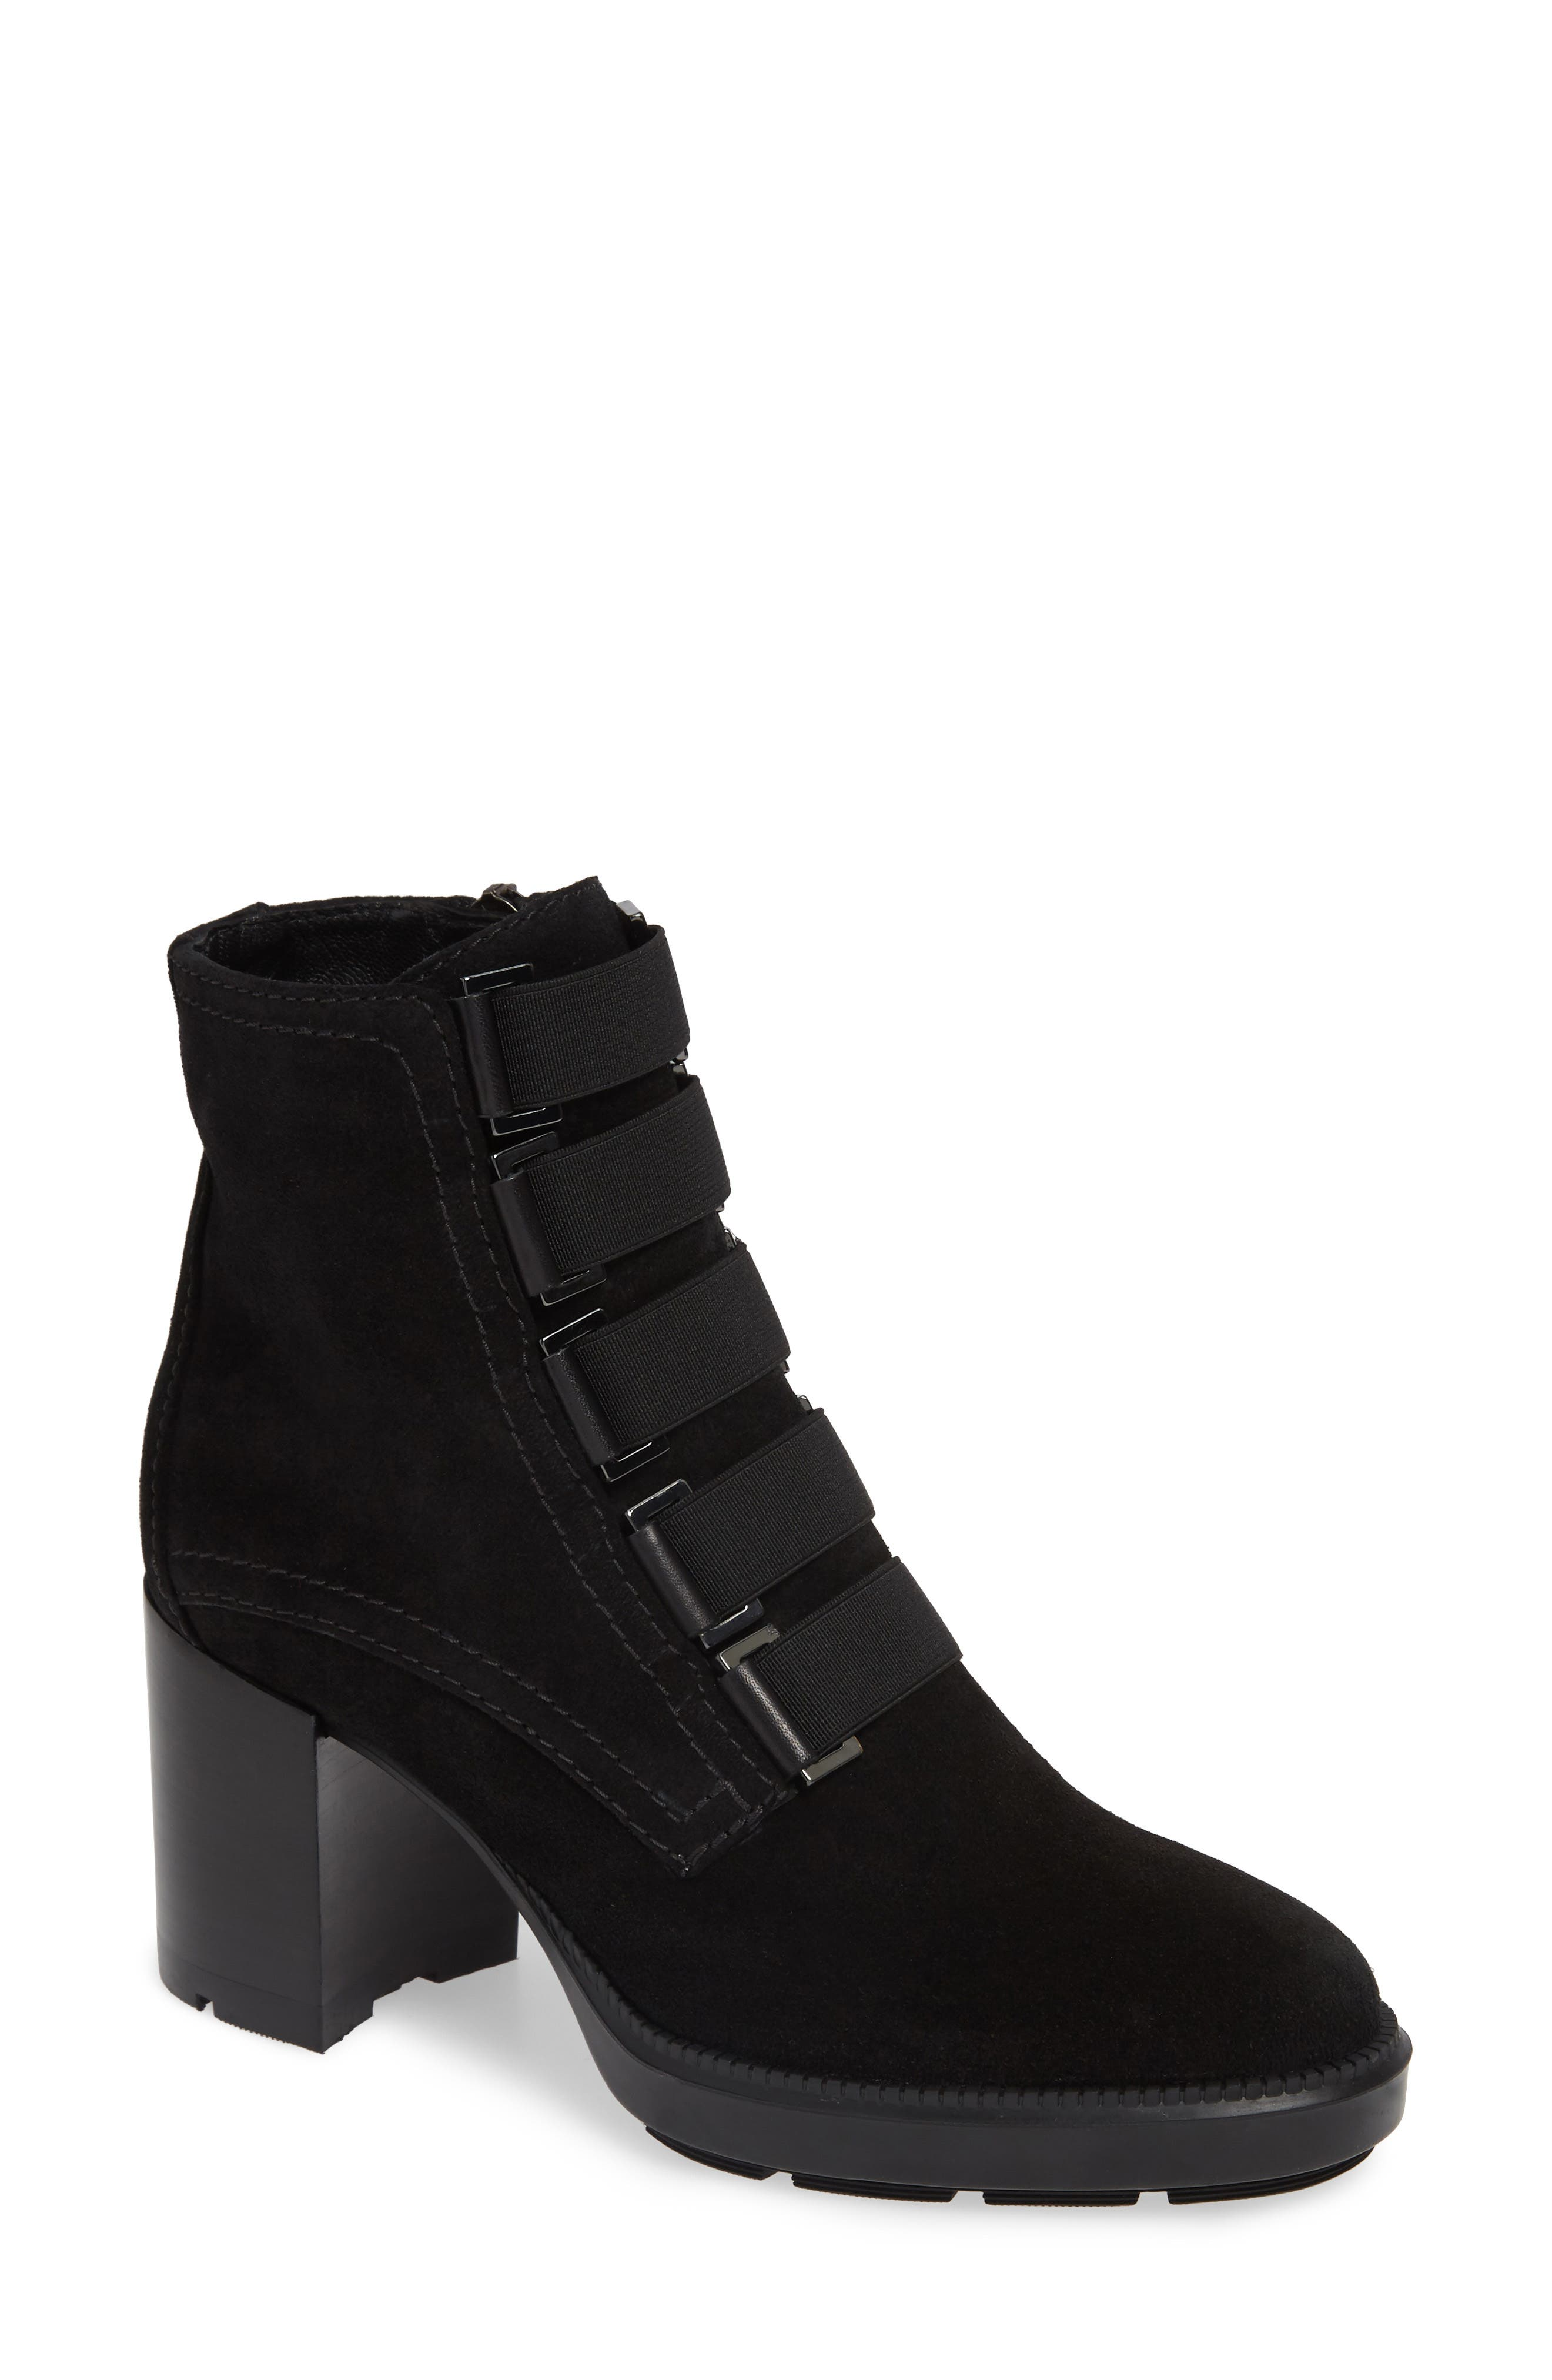 AQUATALIA Women'S Indira Round Toe Buckled Booties in Black